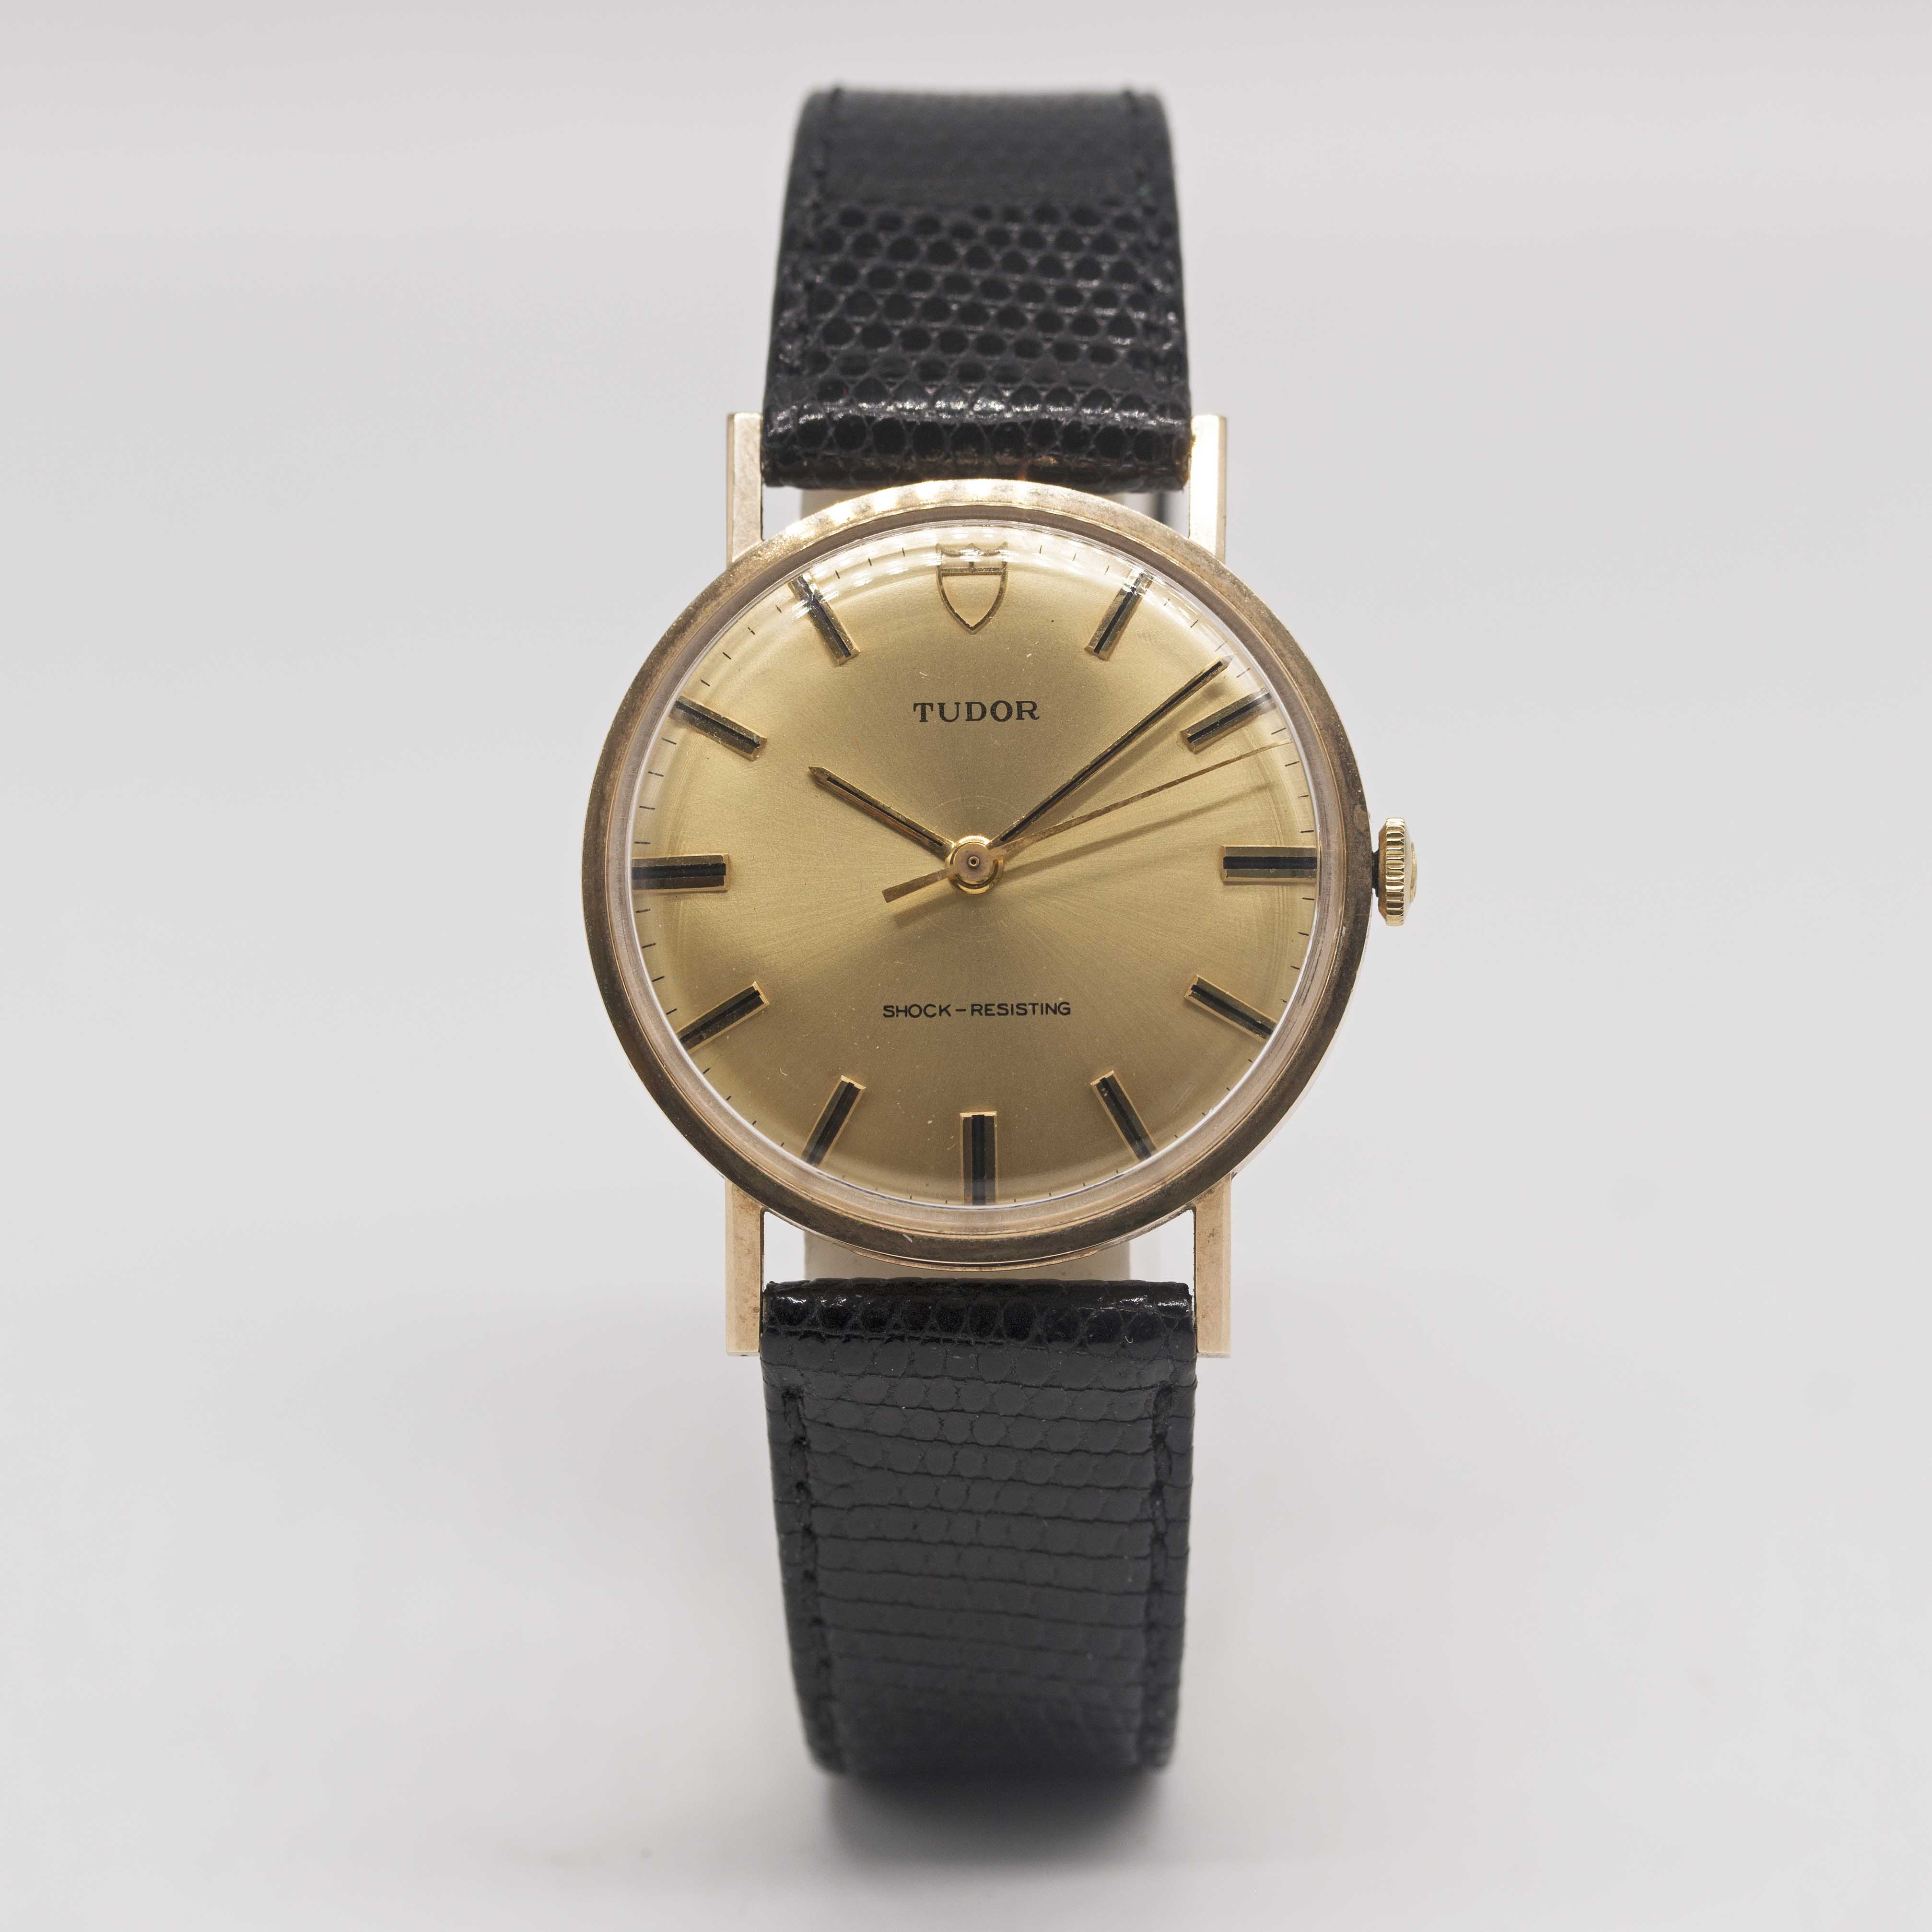 Lot 22 - A GENTLEMAN'S 9CT SOLID GOLD ROLEX TUDOR SHOCK RESISTING WRIST WATCH CIRCA 1969, WITH CHAMPAGNE